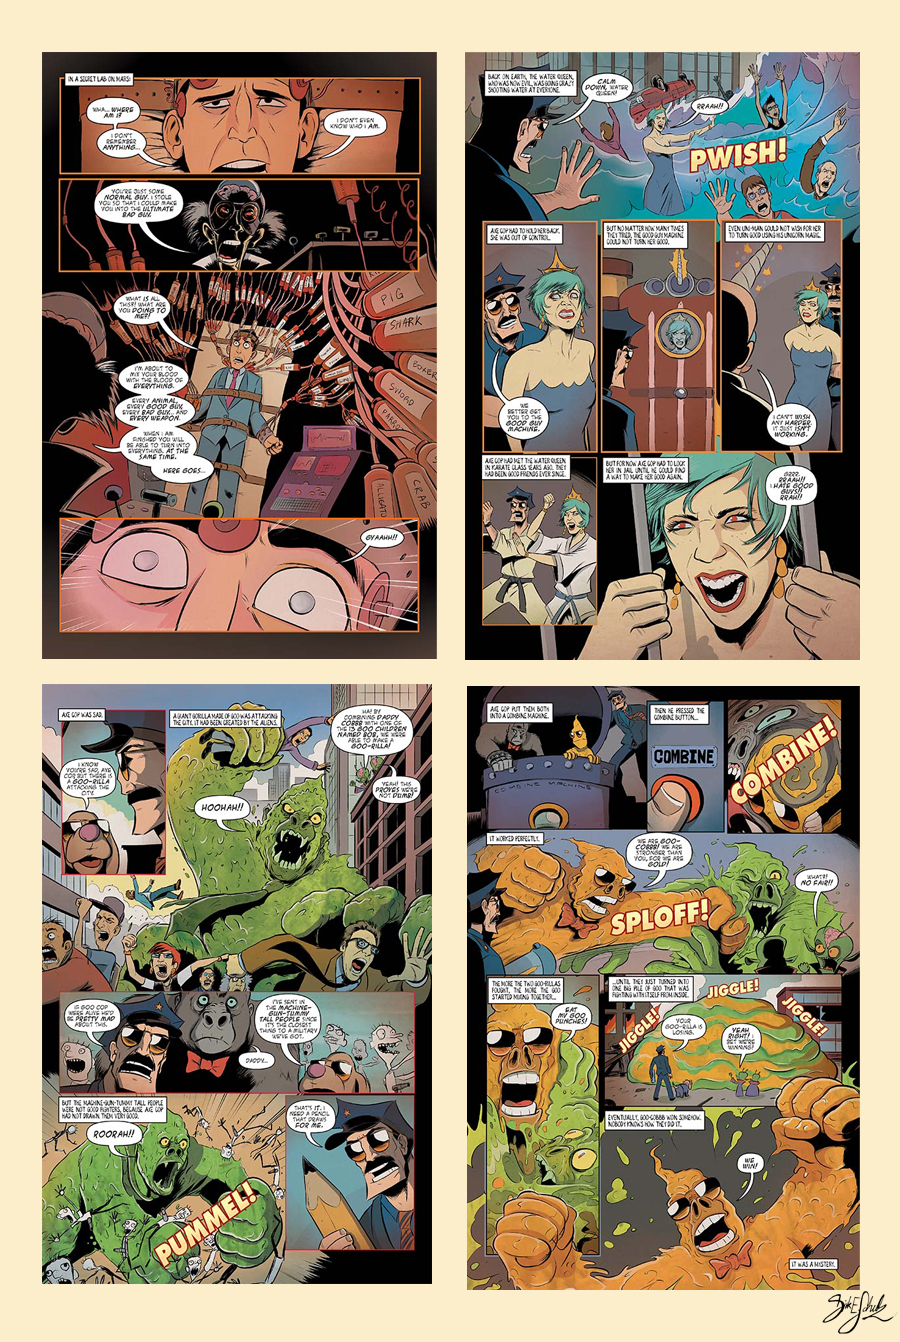 Axe Cop 2 Issue 3 - preview by Themrock